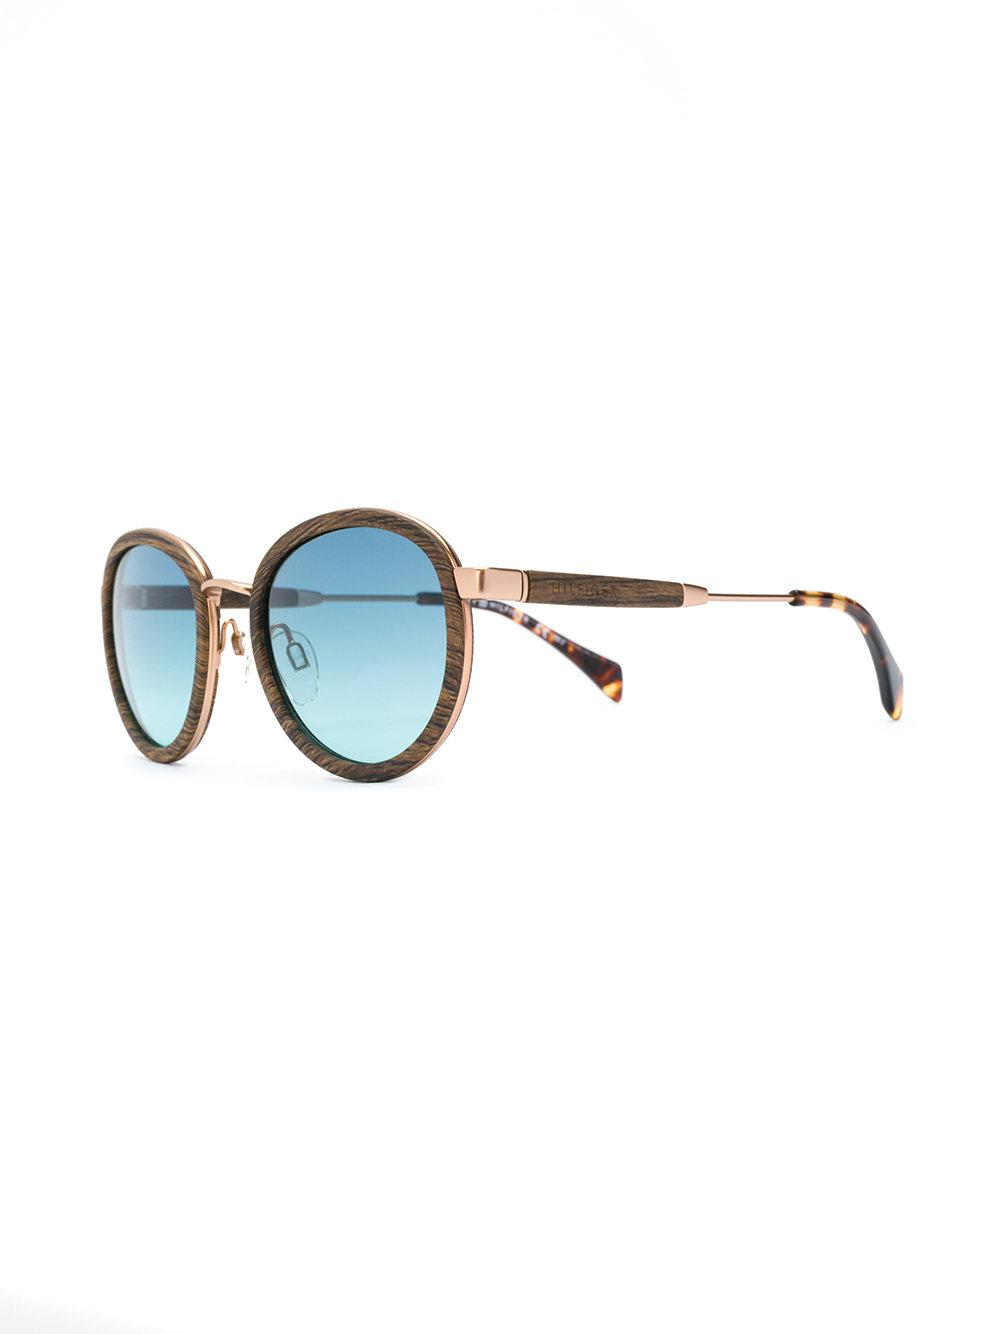 2cafeb52d74 Lyst - Tommy Hilfiger Wood Effect Sunglasses in Brown